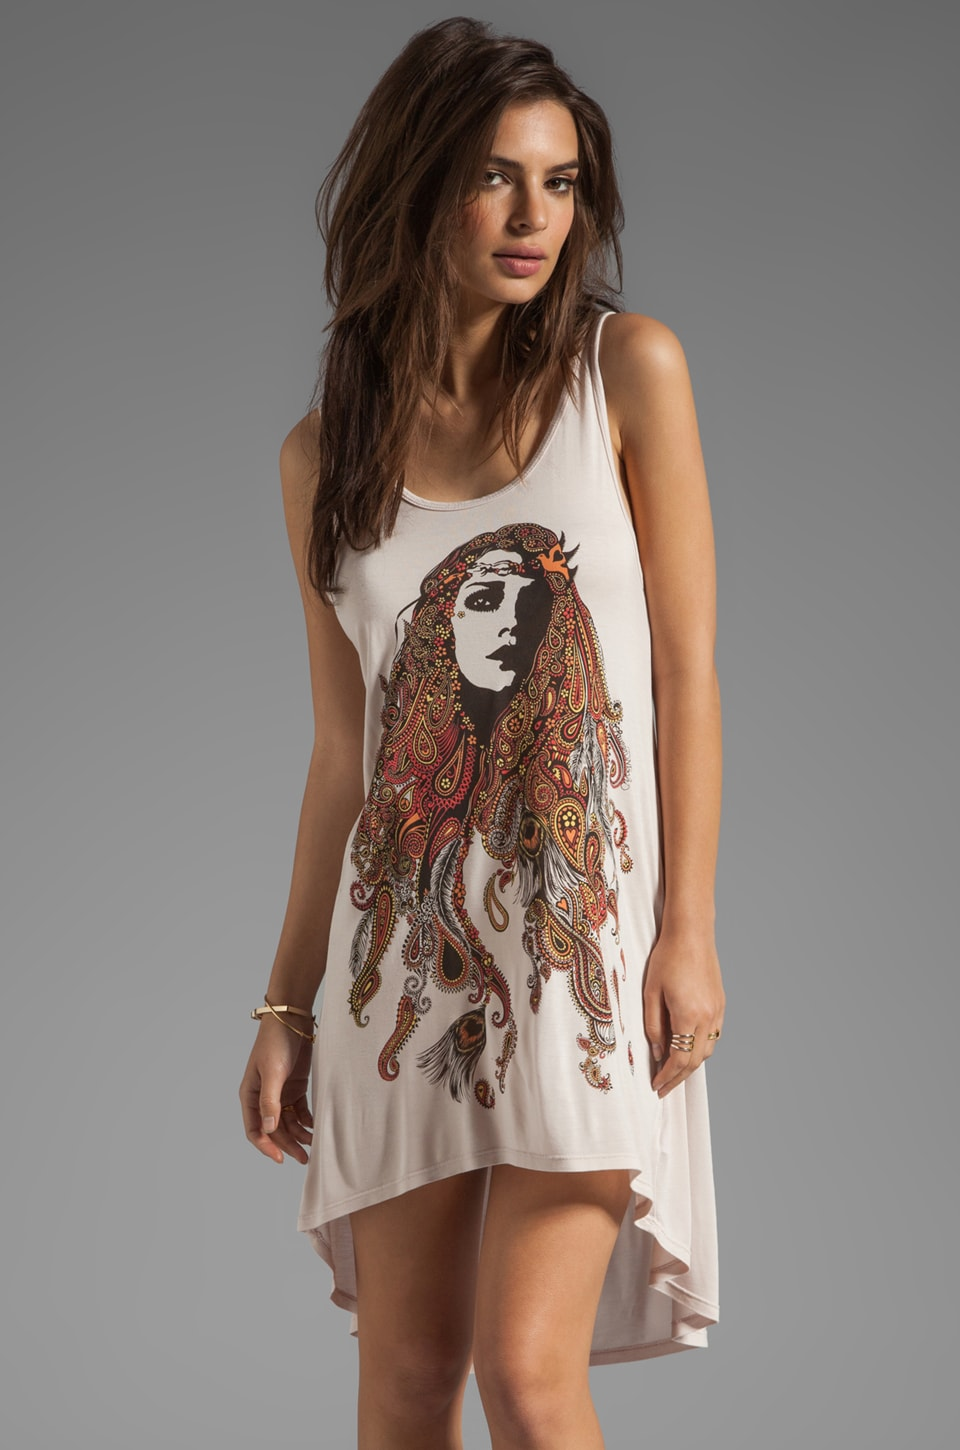 Lauren Moshi Claire Color Gypsy Girl Tank in Pink Ivory